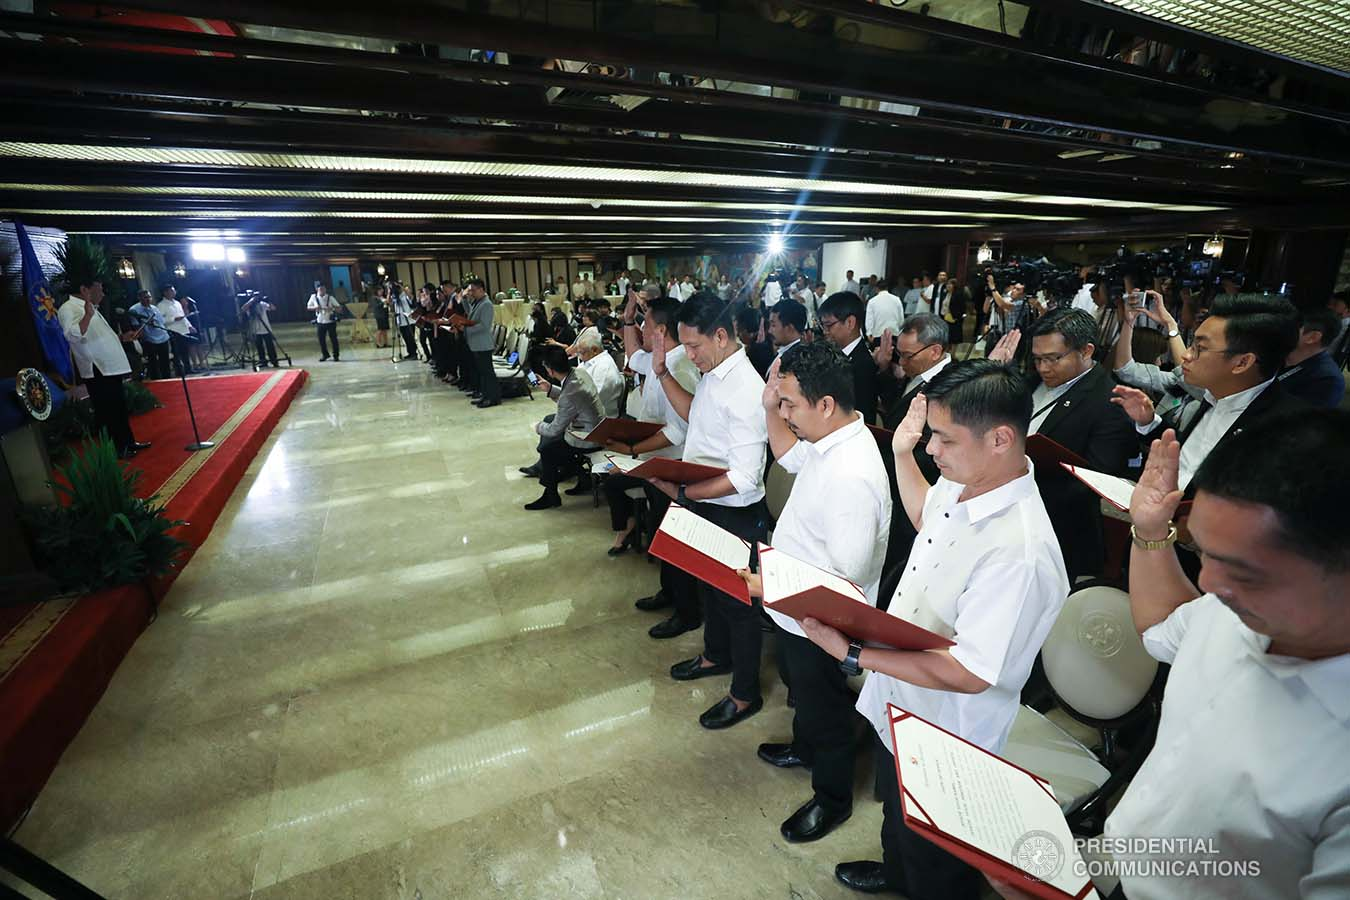 President Rodrigo Roa Duterte administers the oath to the officers of the Malacañang Press Corps, Presidential Photojournalists Association, and Malacañang Cameramen Association during a ceremony at the Malacañan Palace on September 10, 2019. SIMEON CELI JR./PRESIDENTIAL PHOTO